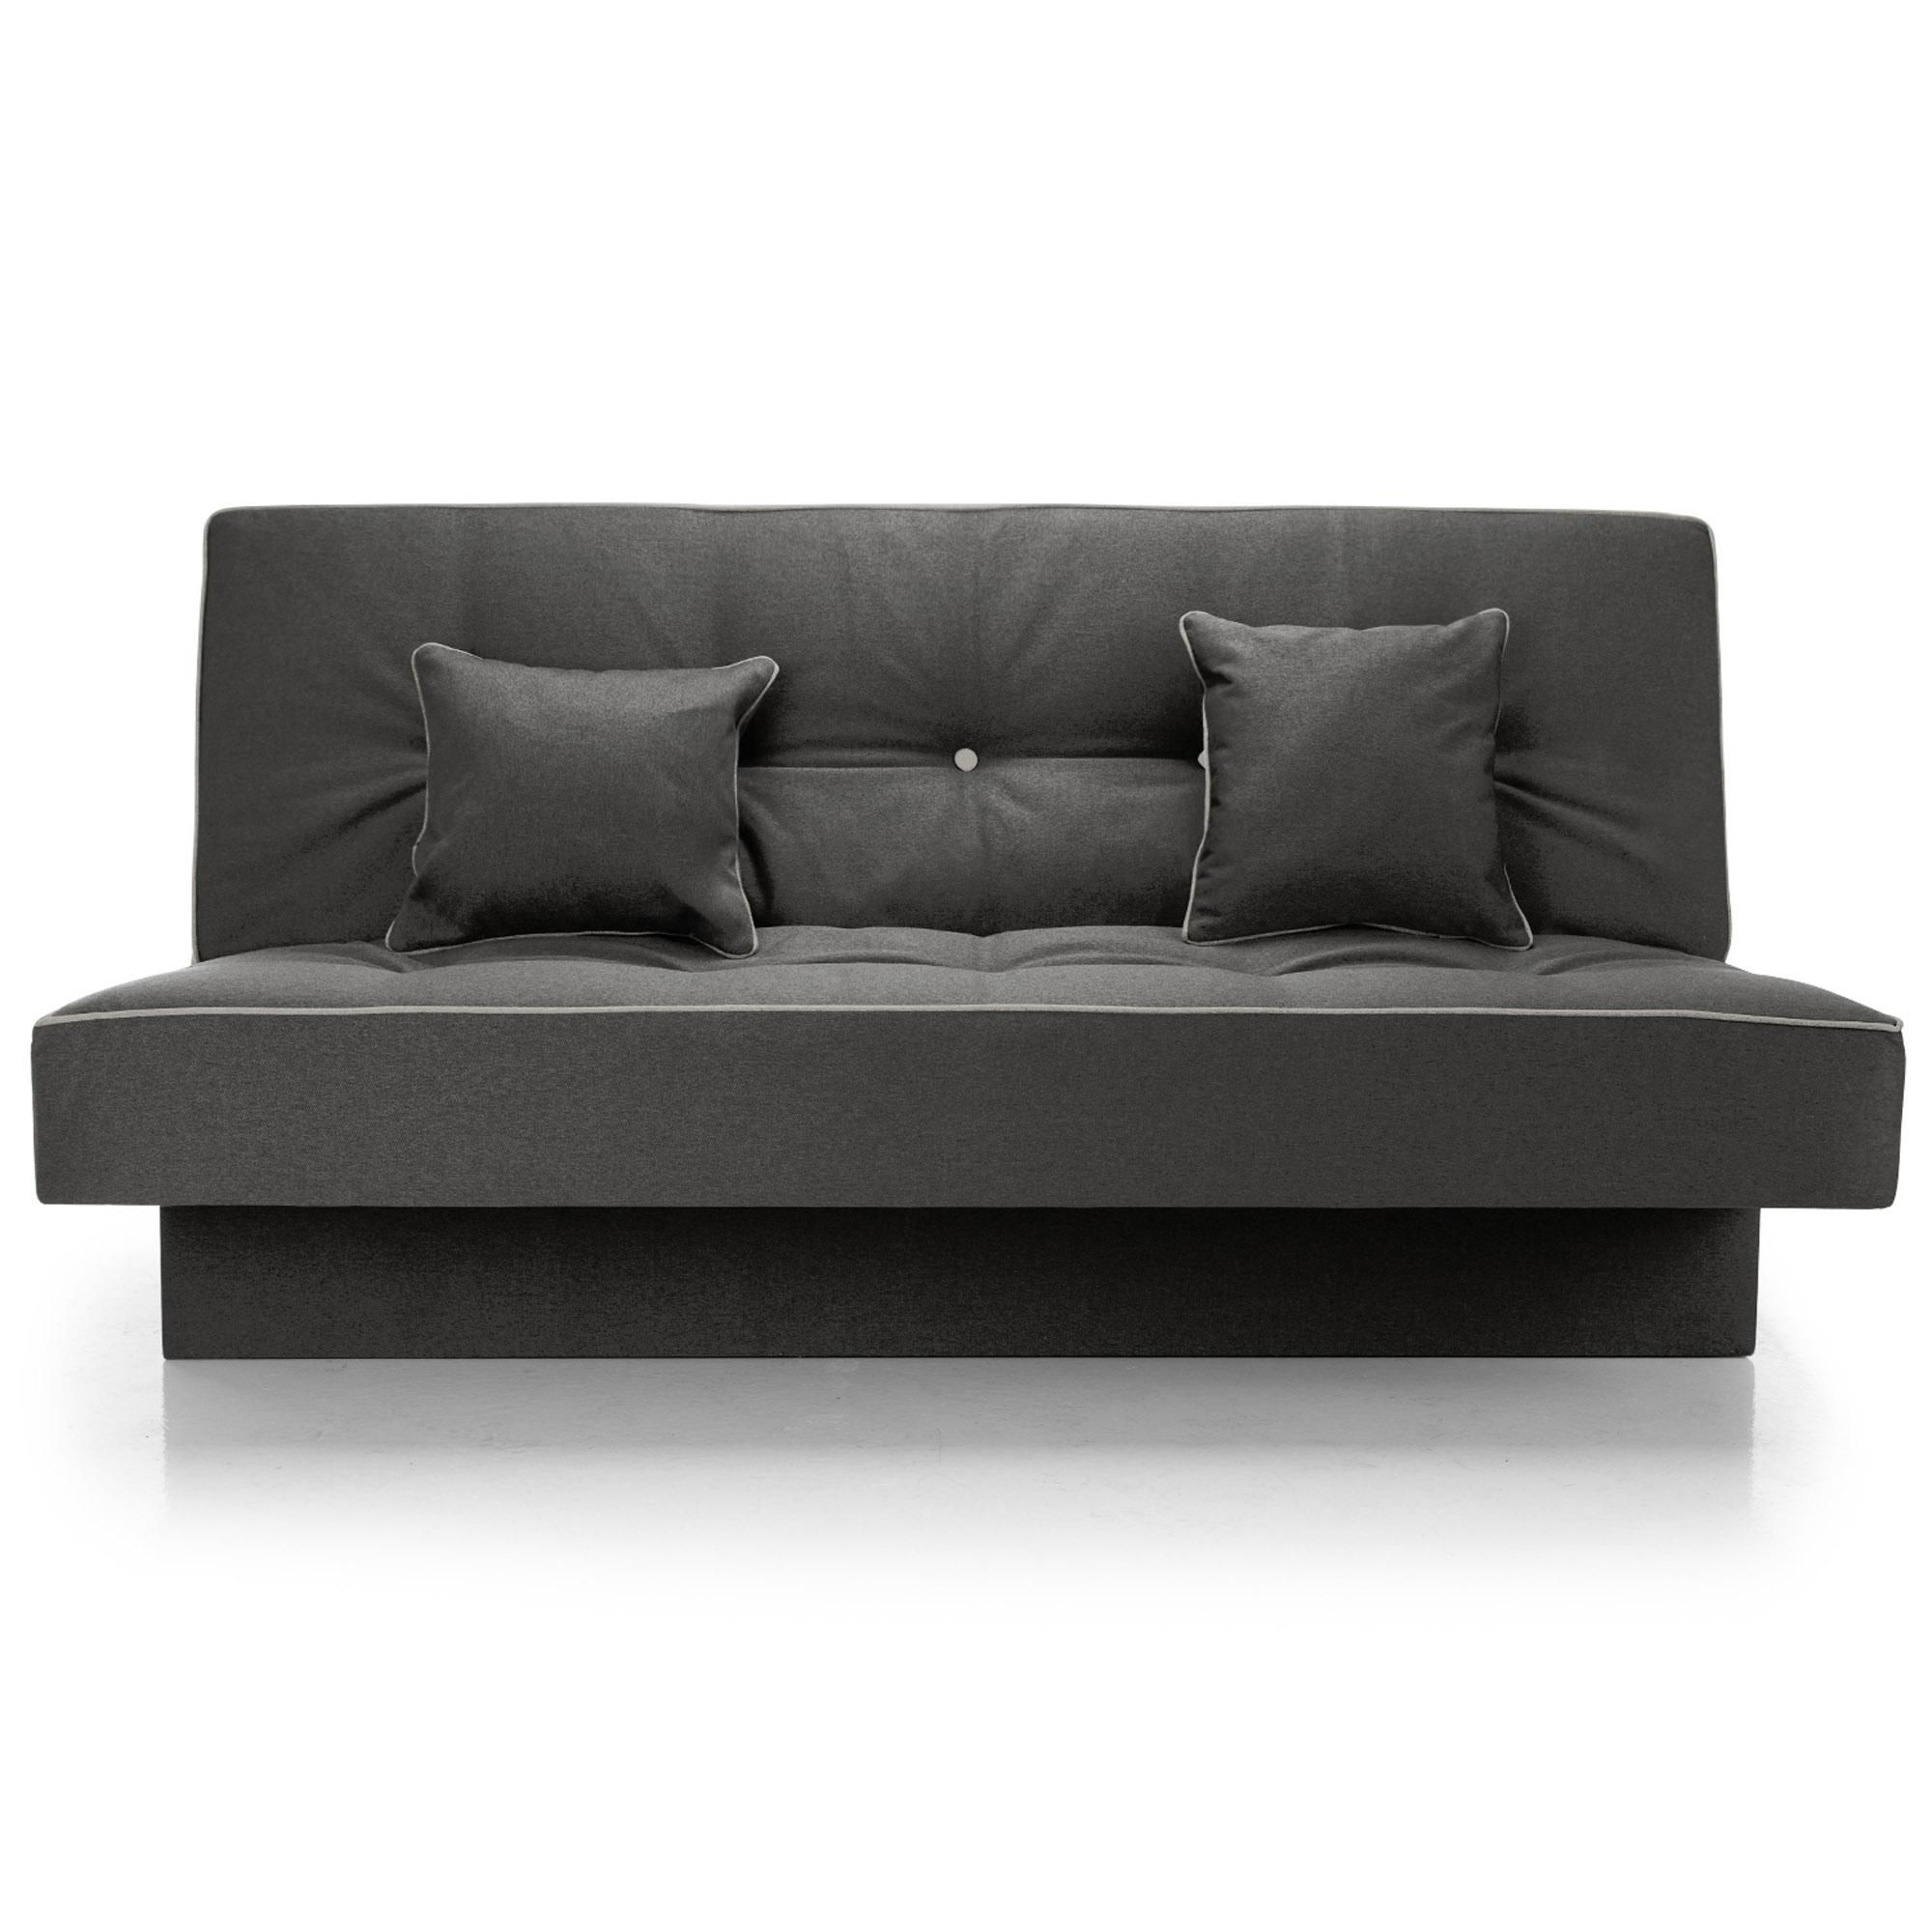 Hamilton Pocket Sprung 3 Seater Sofa Bed In 2020 Sofa Bed With